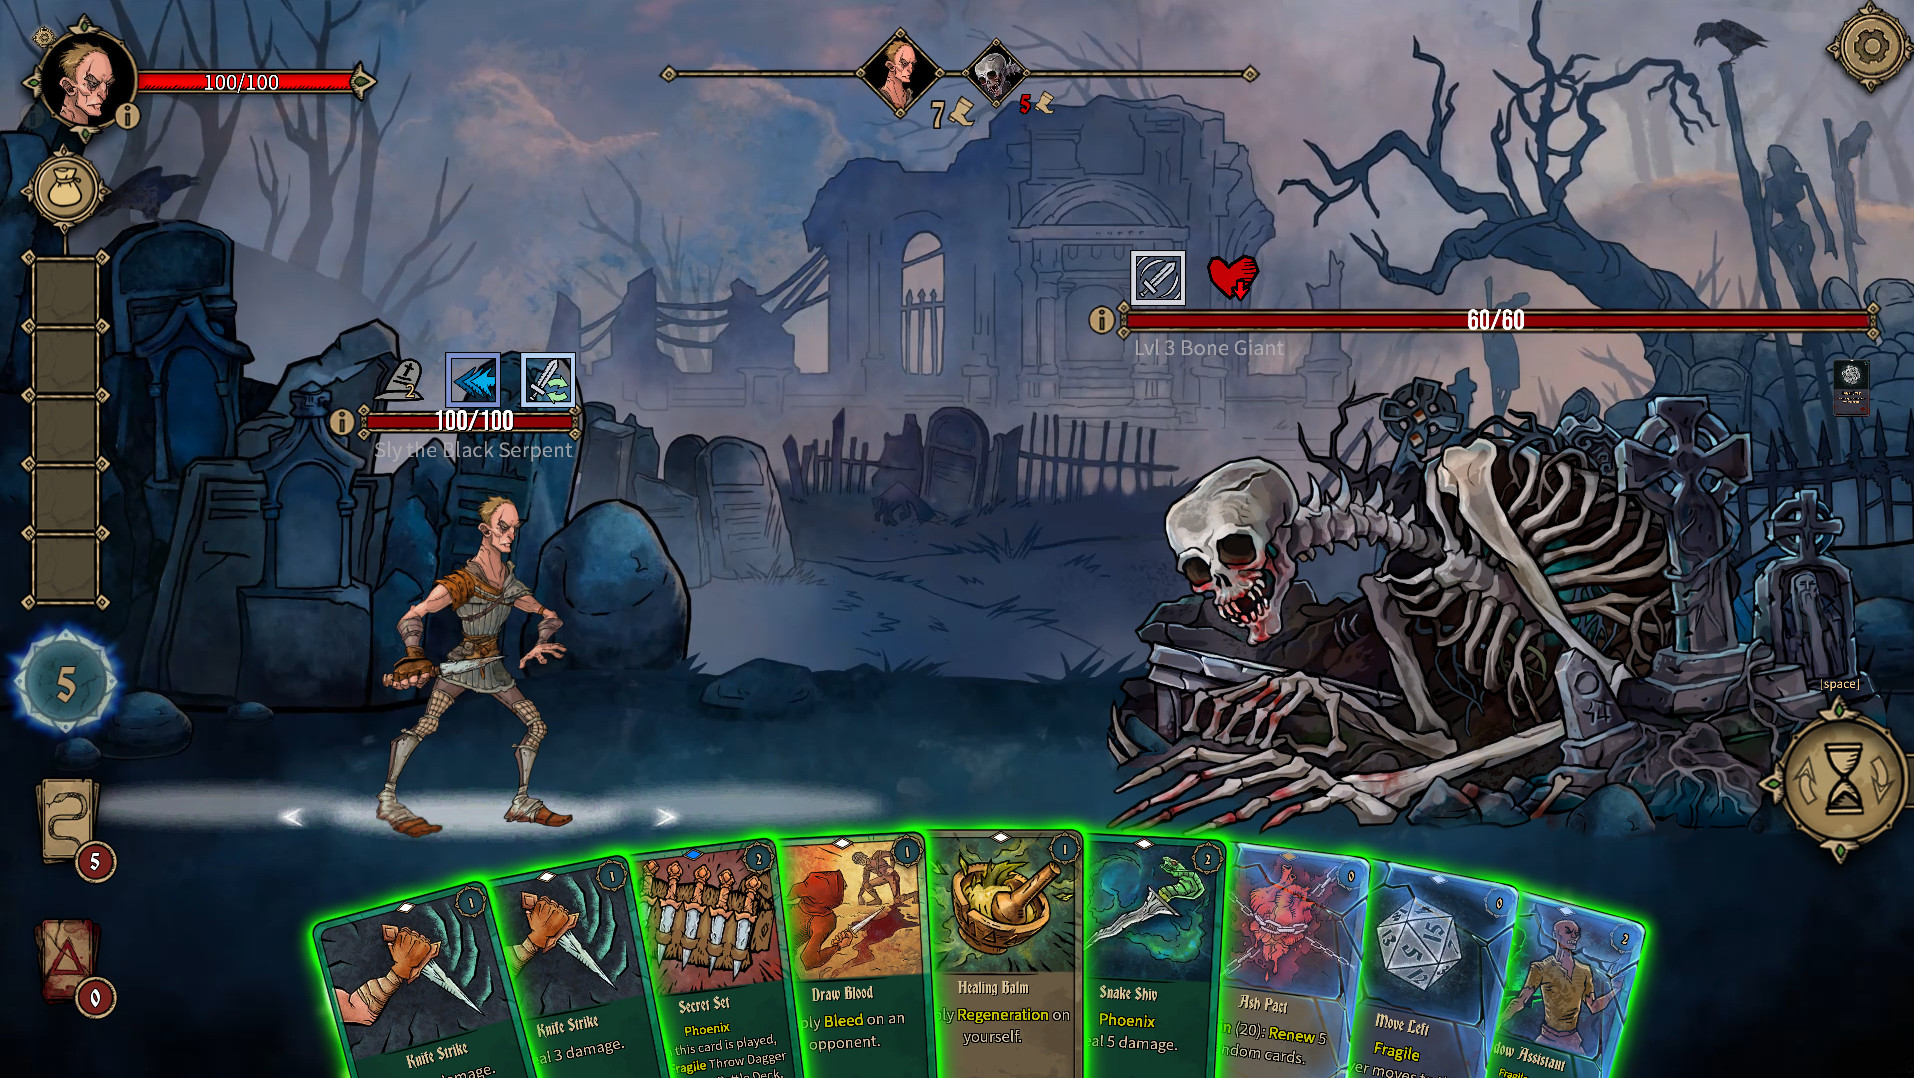 Fantasy-Adventure Card Game 'Deck of Ashes' is set to Release June 9th